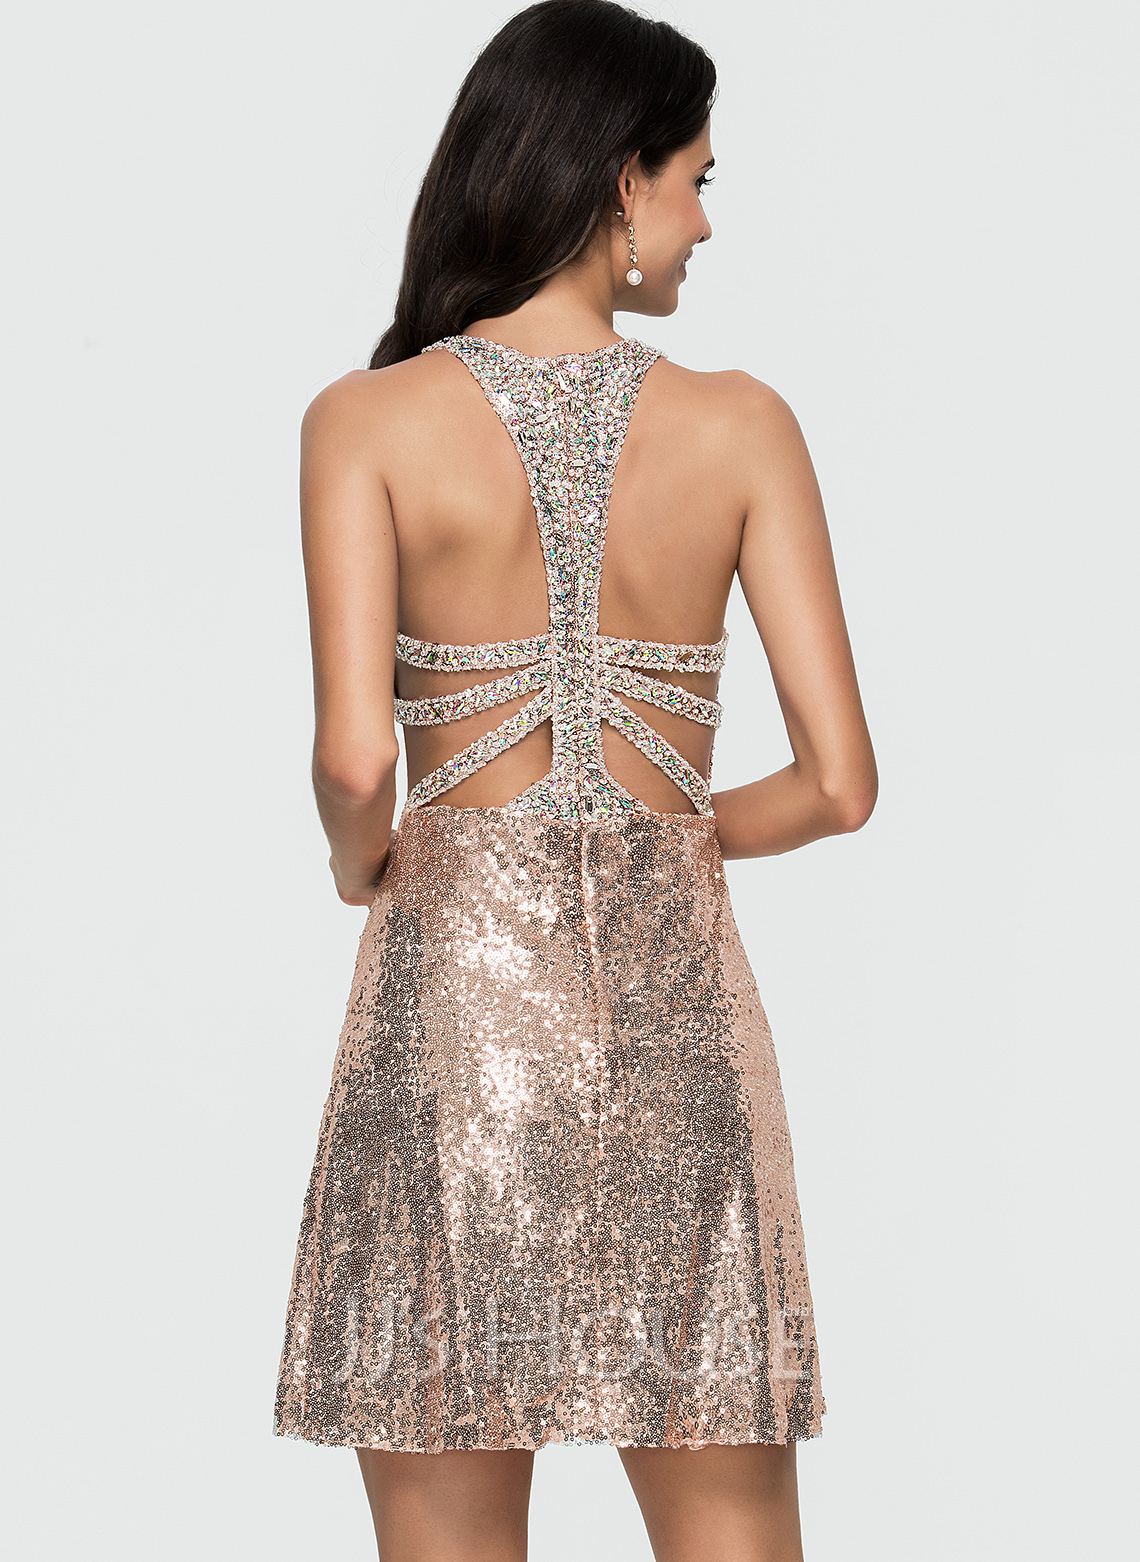 A-Line Scoop Neck Short/Mini Sequined Homecoming Dress With Beading